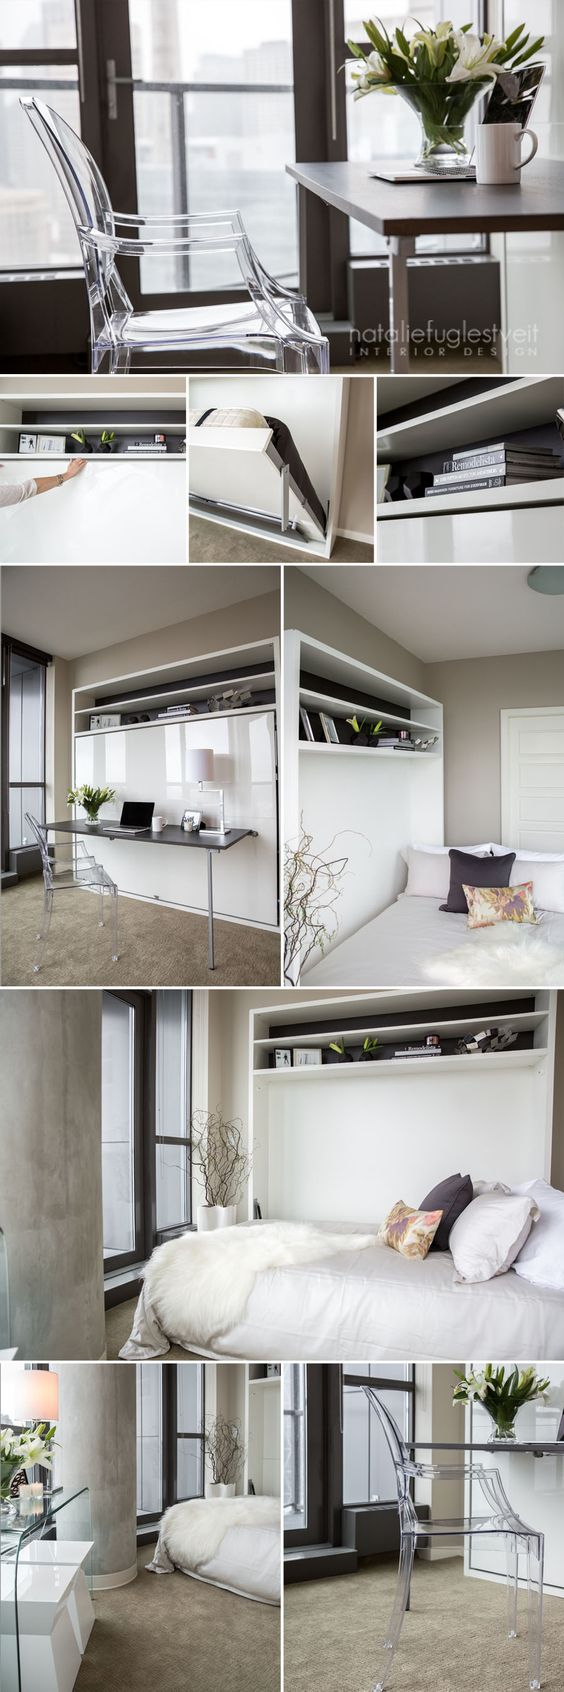 Wall beds places and i wish on pinterest for Murphy bed interior design